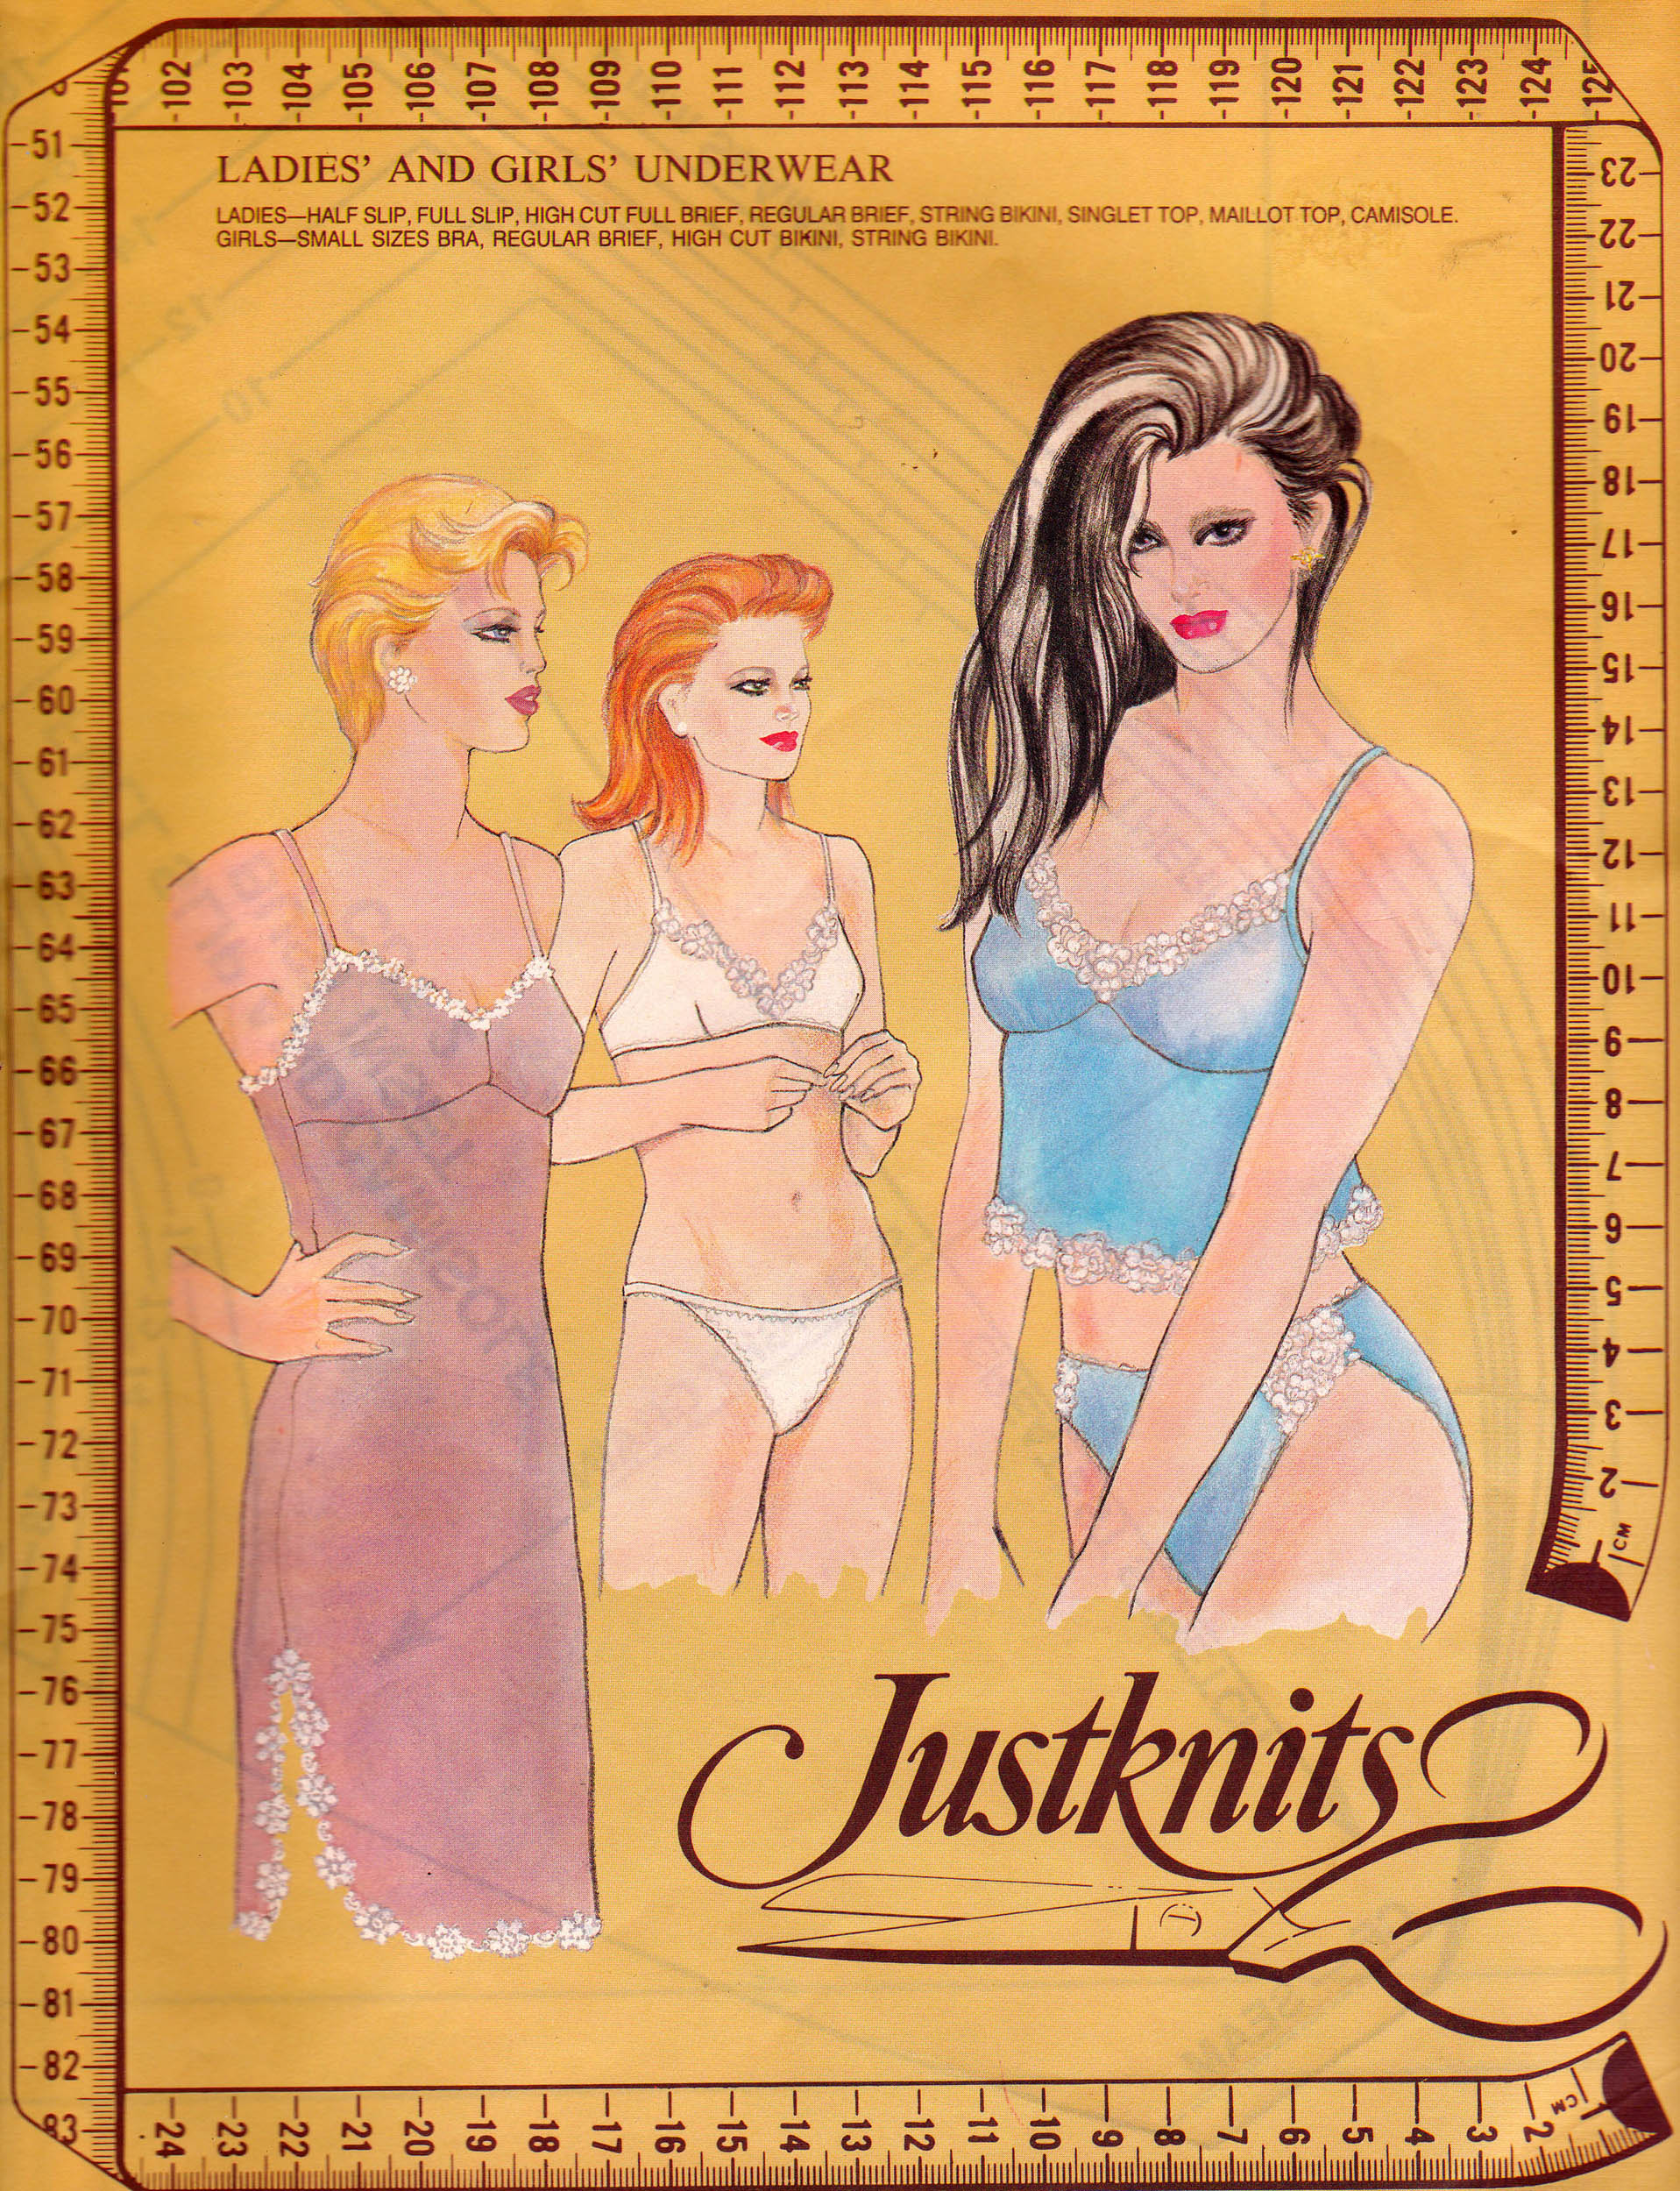 Justknits Ladies' and Girls' Underwear